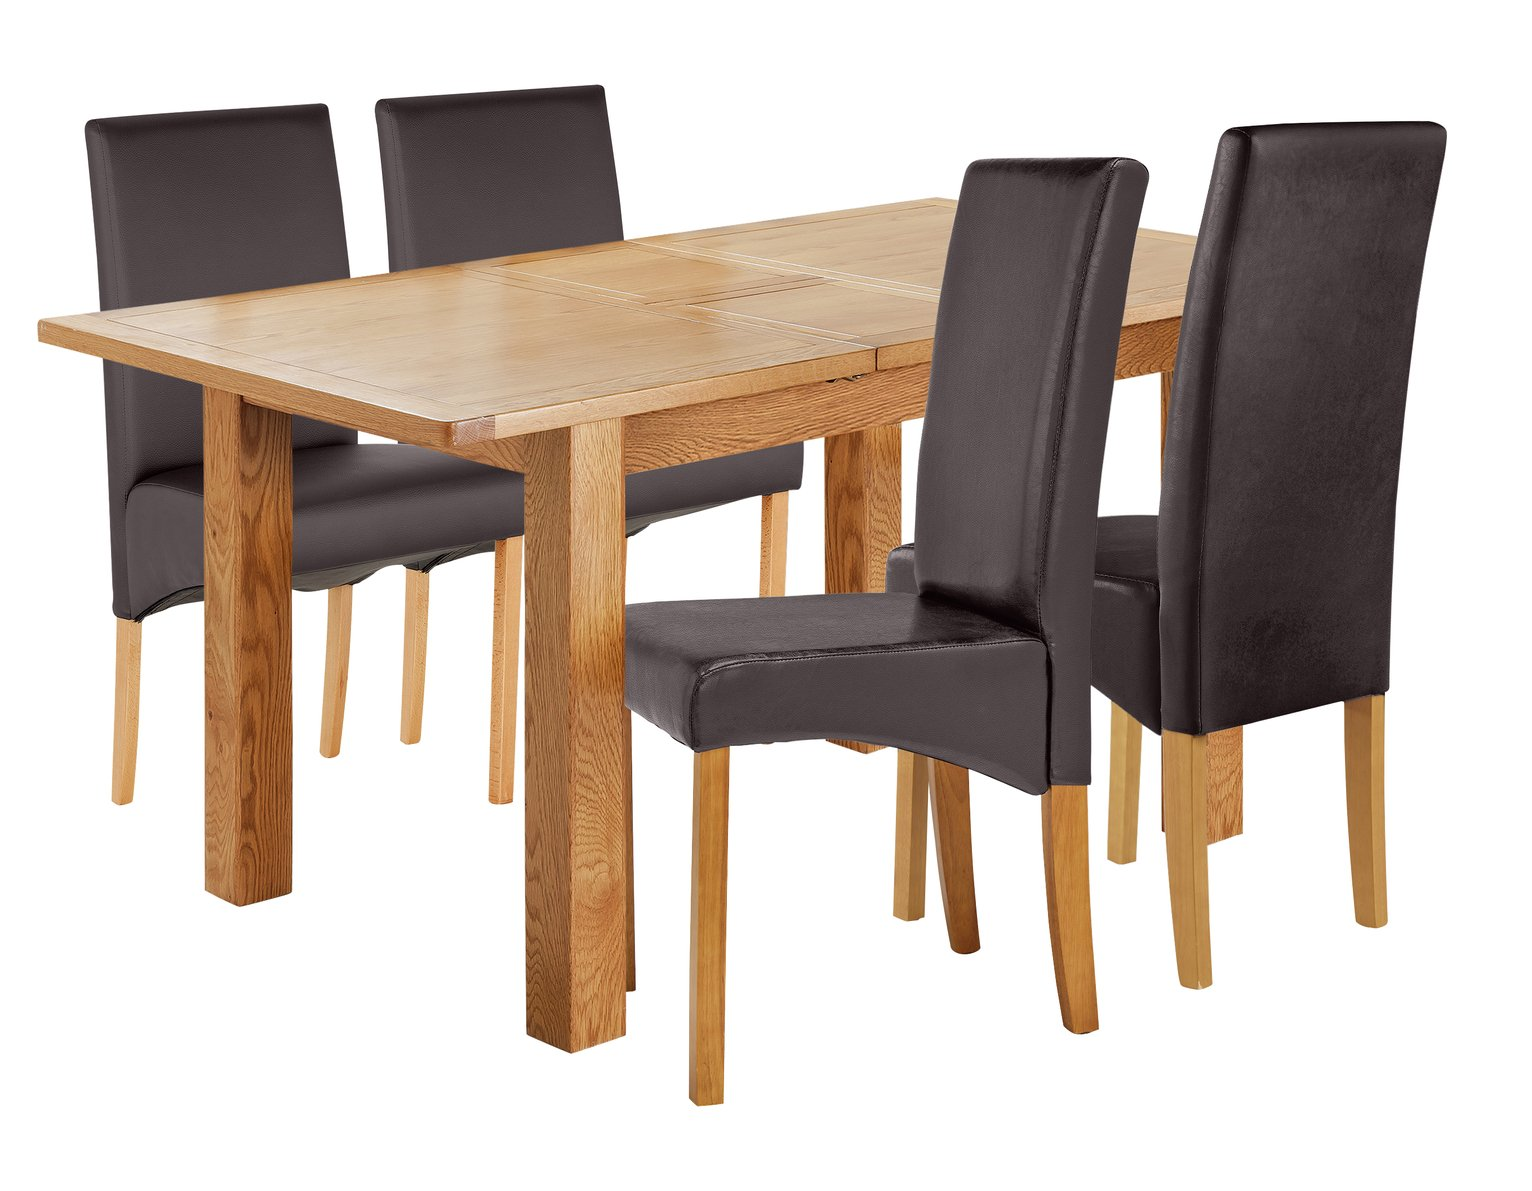 Image of Collection Ashwell Extendable Table & 4 Chairs - Chocolate